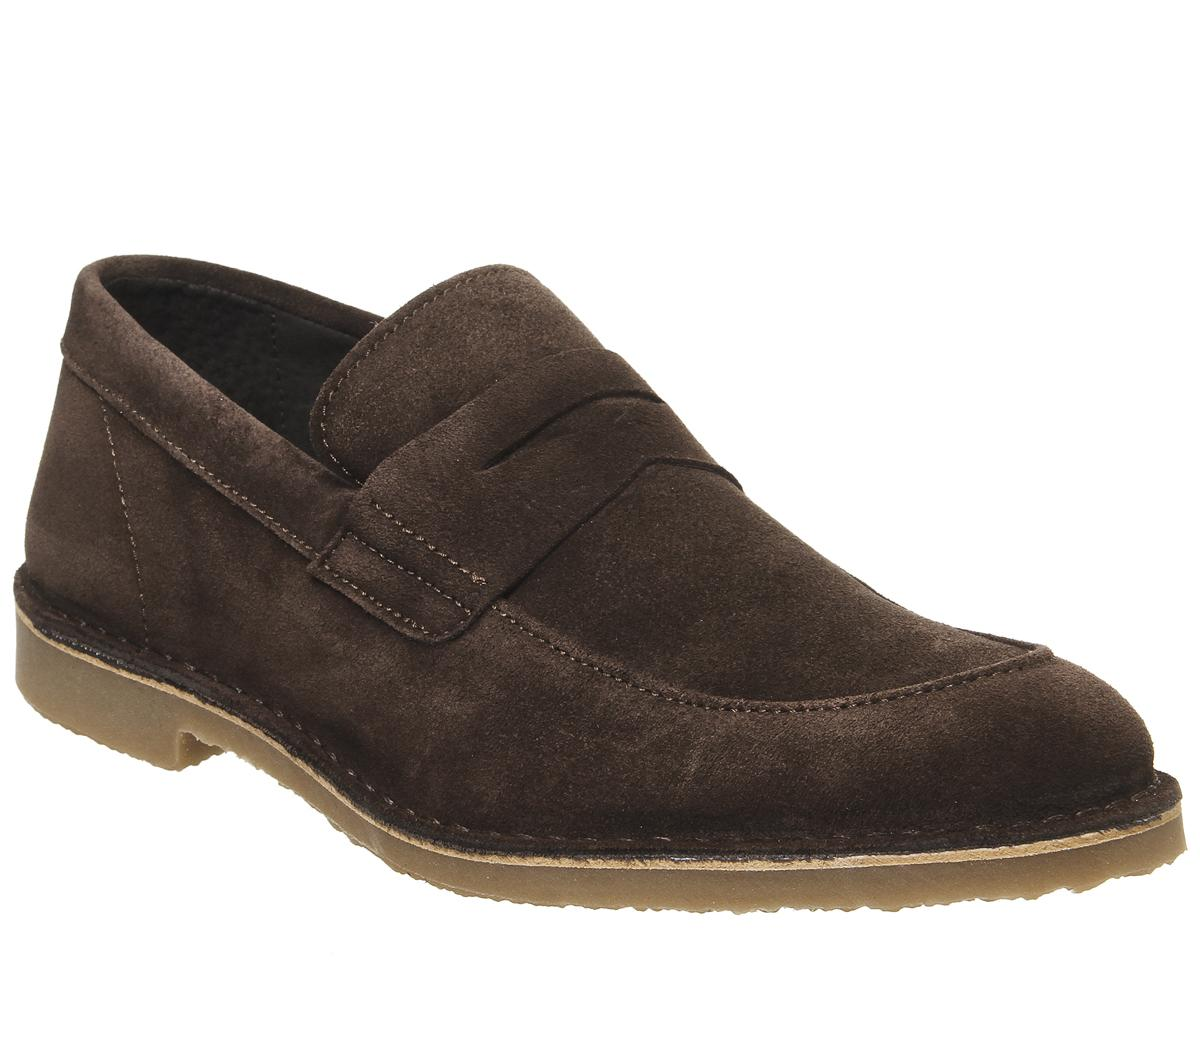 Cainan Loafer